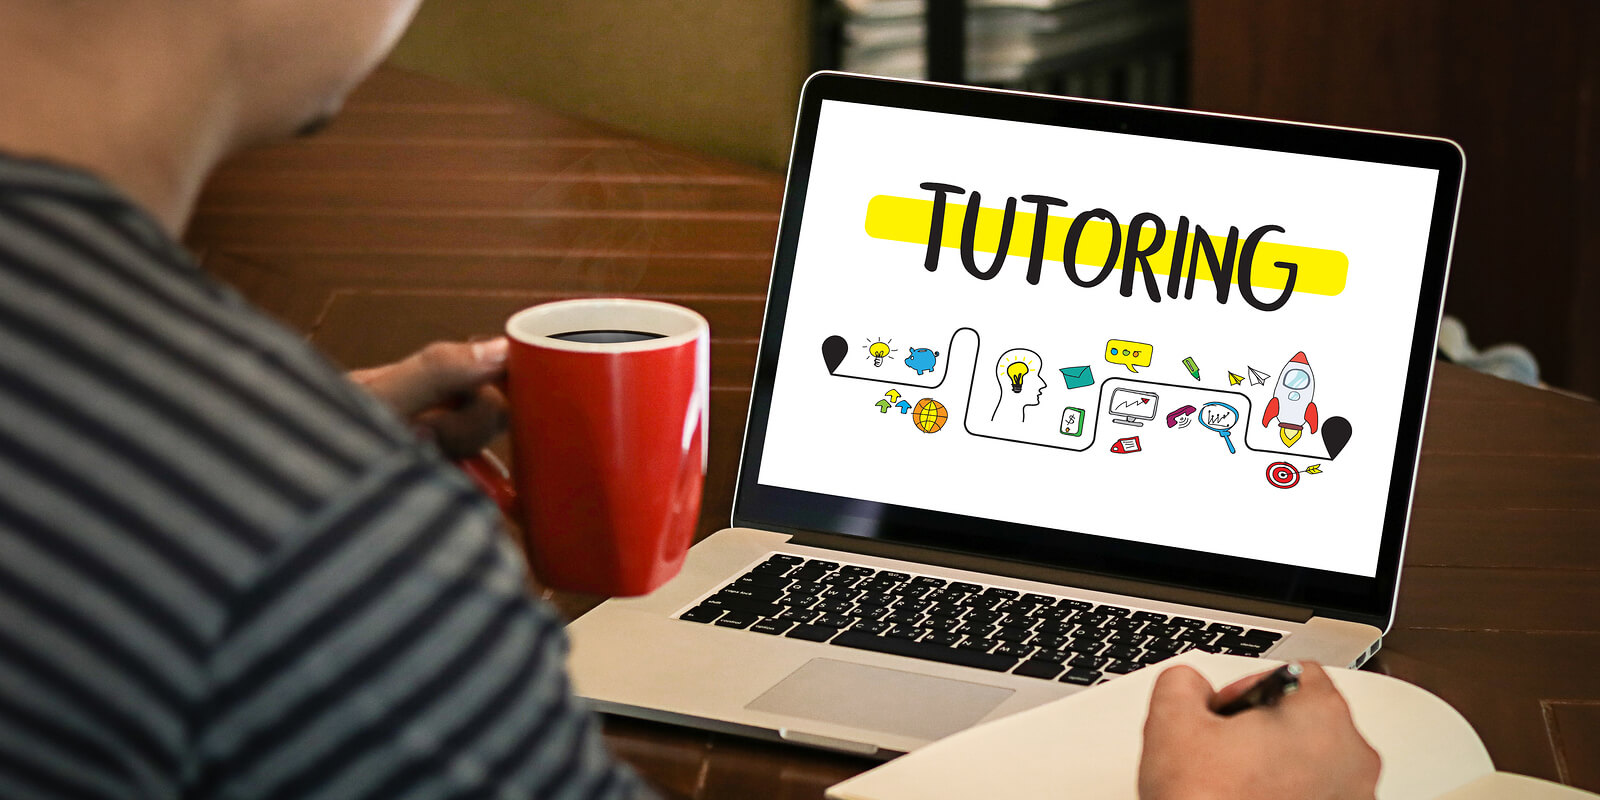 Over 50? 5 Reasons to Consider Online Tutoring | FlexJobs